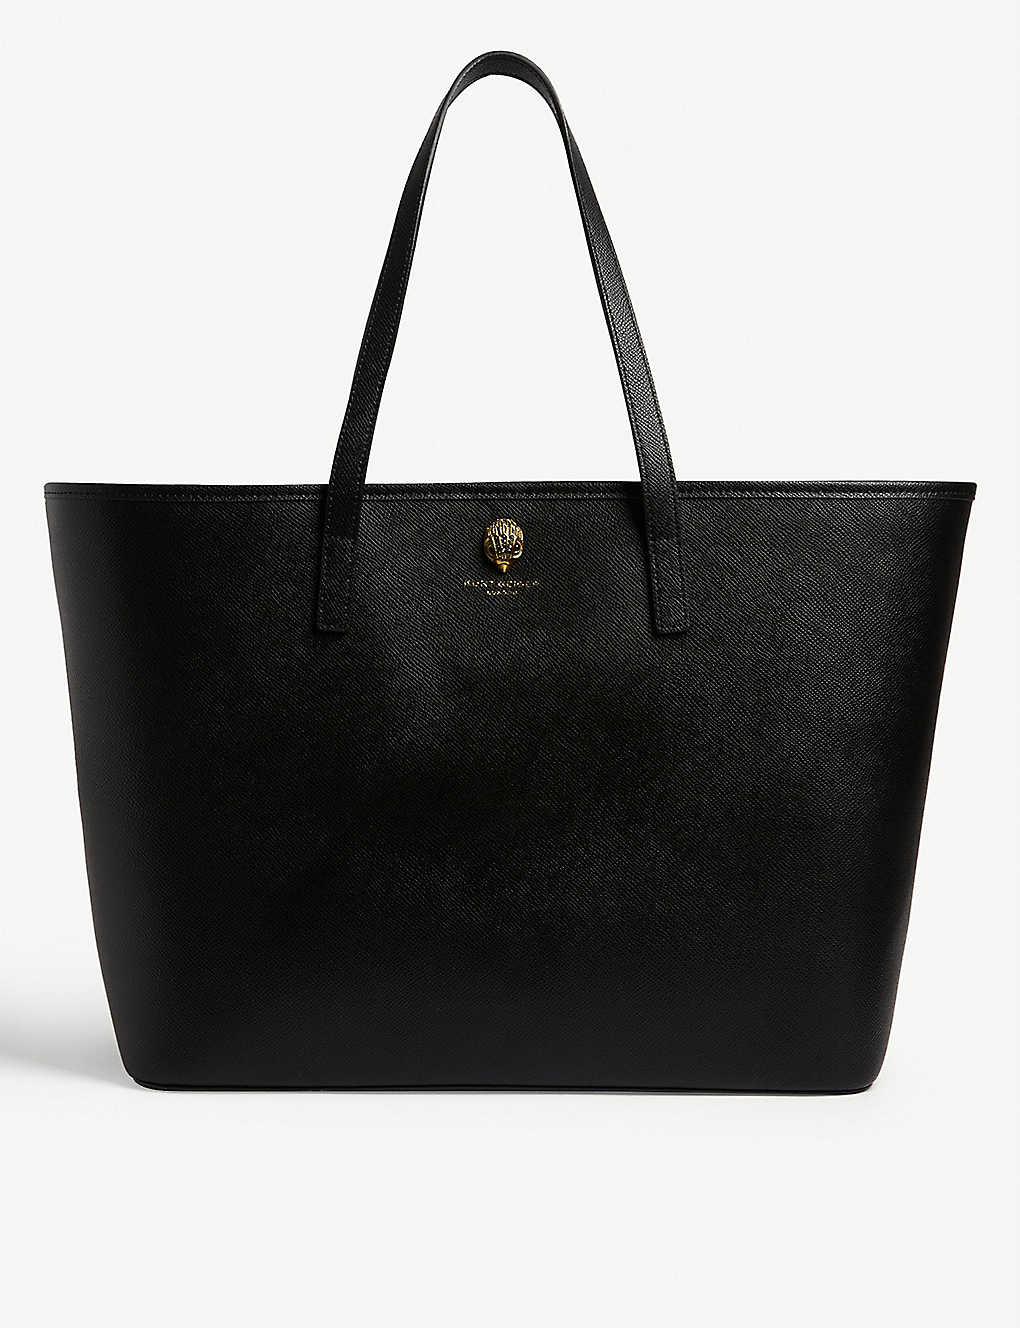 KURT GEIGER LONDON: Richmond tote bag